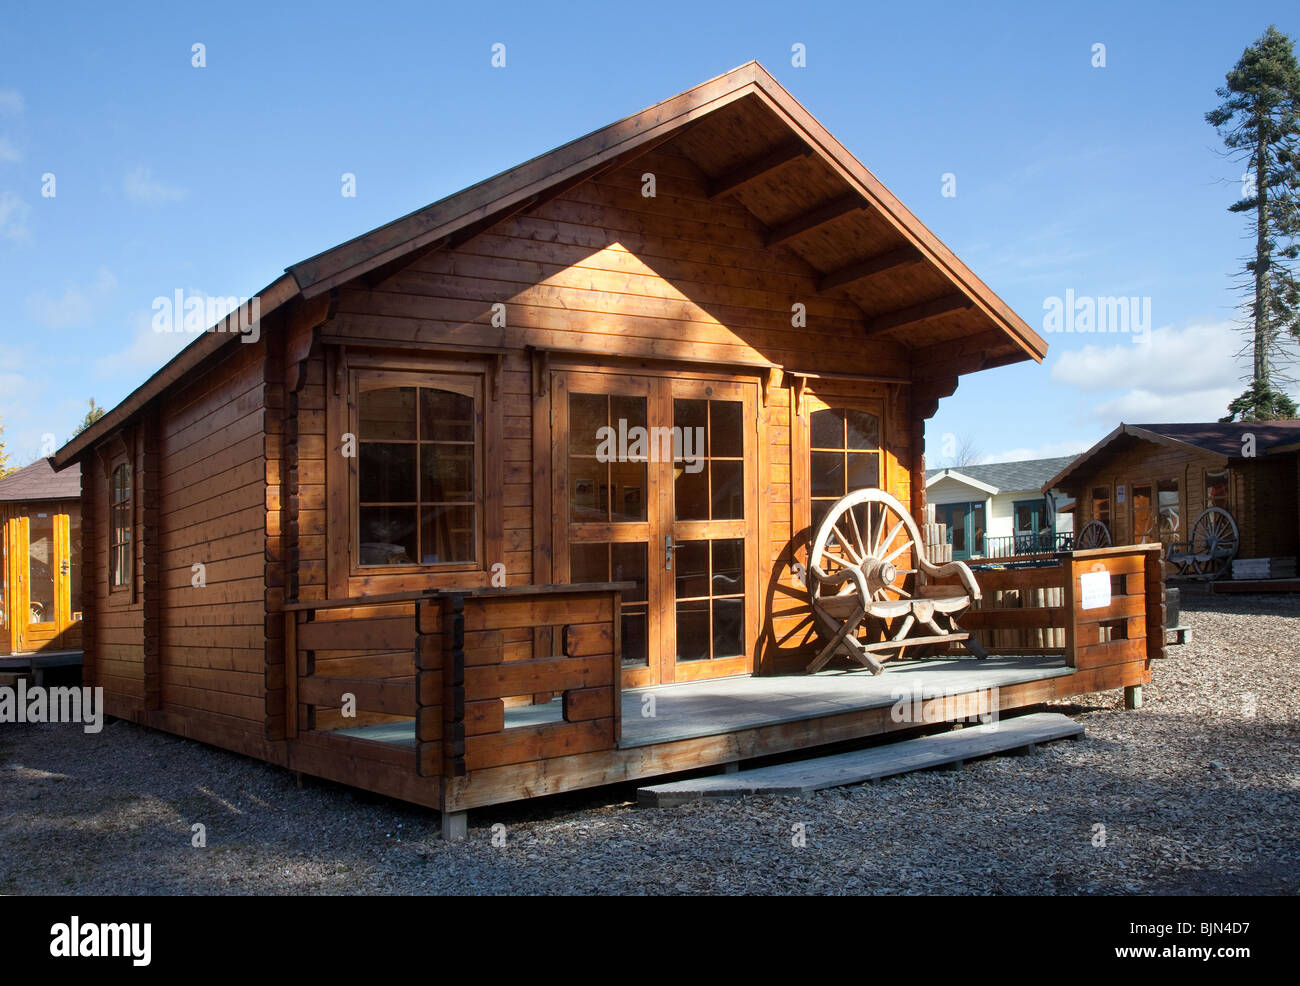 Garden Sheds Virginia Beach timber garden sheds uk - pueblosinfronteras